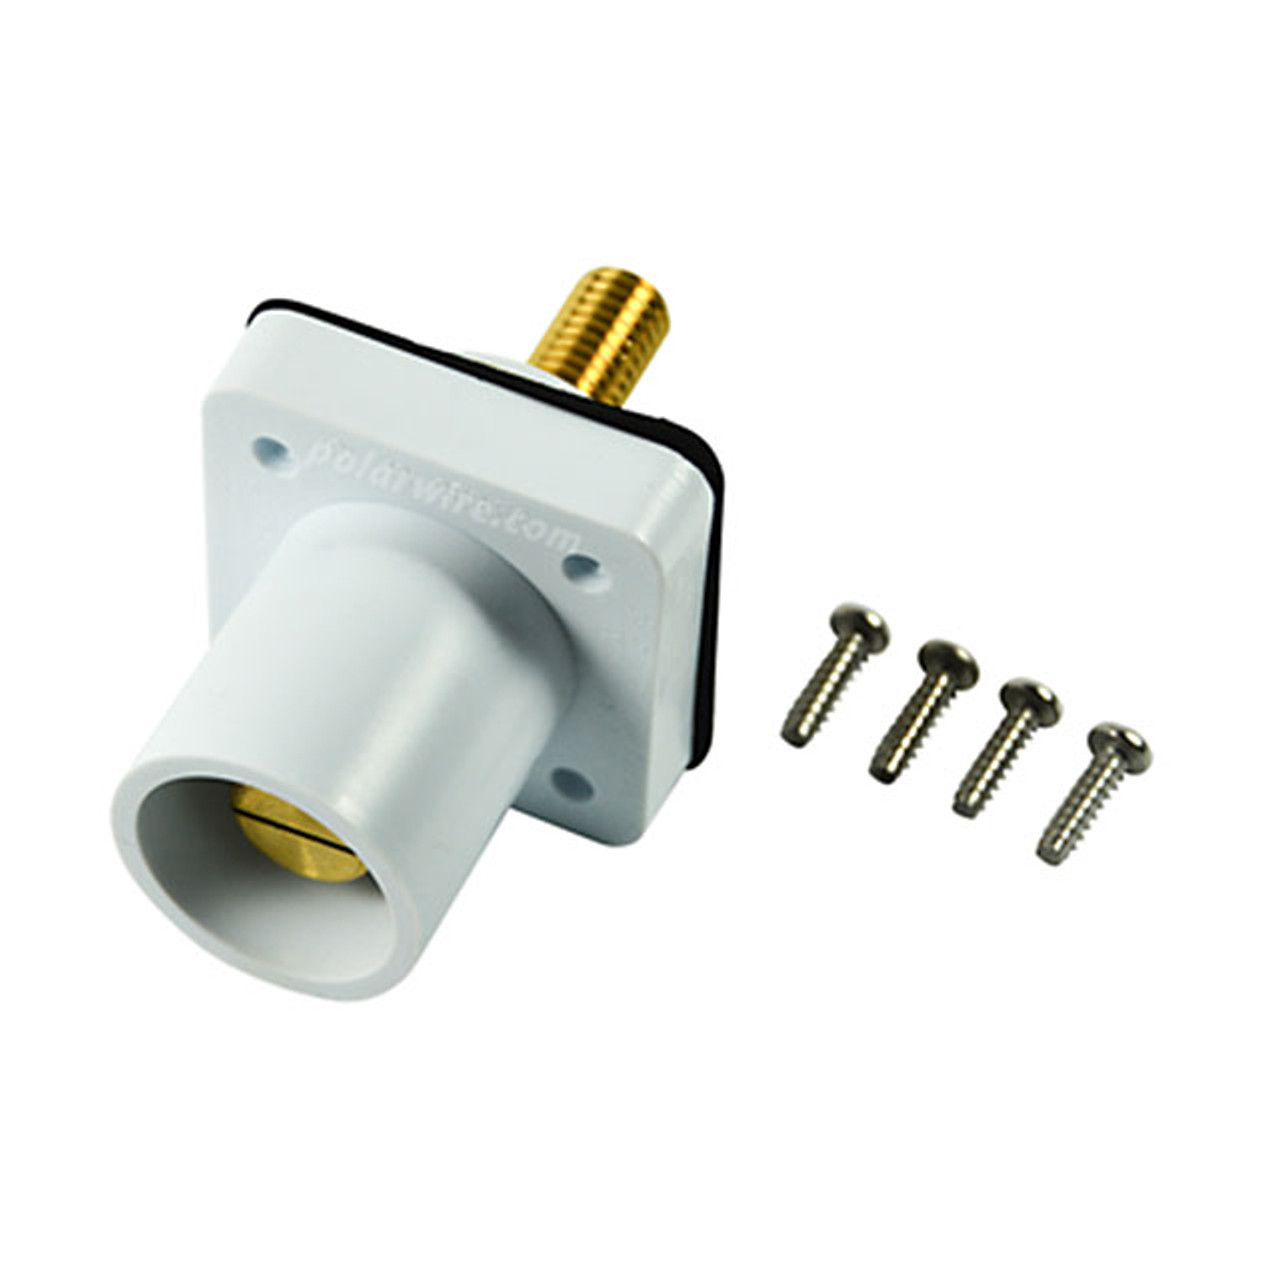 "CAM LOCK 400A PANEL MALE WHITE 1/2"" STUD 2/0-4/0"